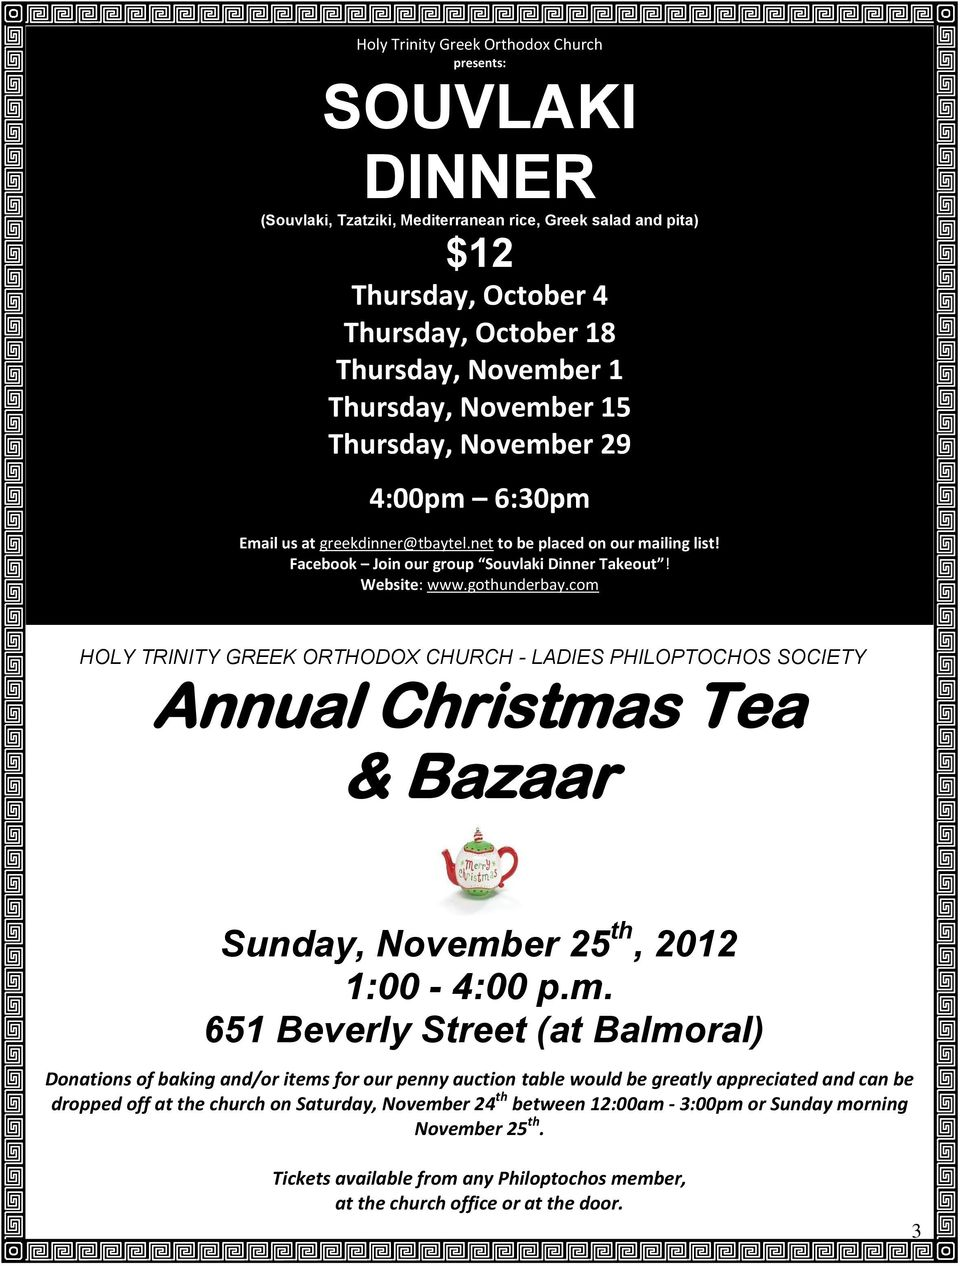 com HOLY TRINITY GREEK ORTHODOX CHURCH - LADIES PHILOPTOCHOS SOCIETY Annual Christmas Tea & Bazaar Sunday, November 25 th, 2012 1:00-4:00 p.m. 651 Beverly Street (at Balmoral) Donations of baking